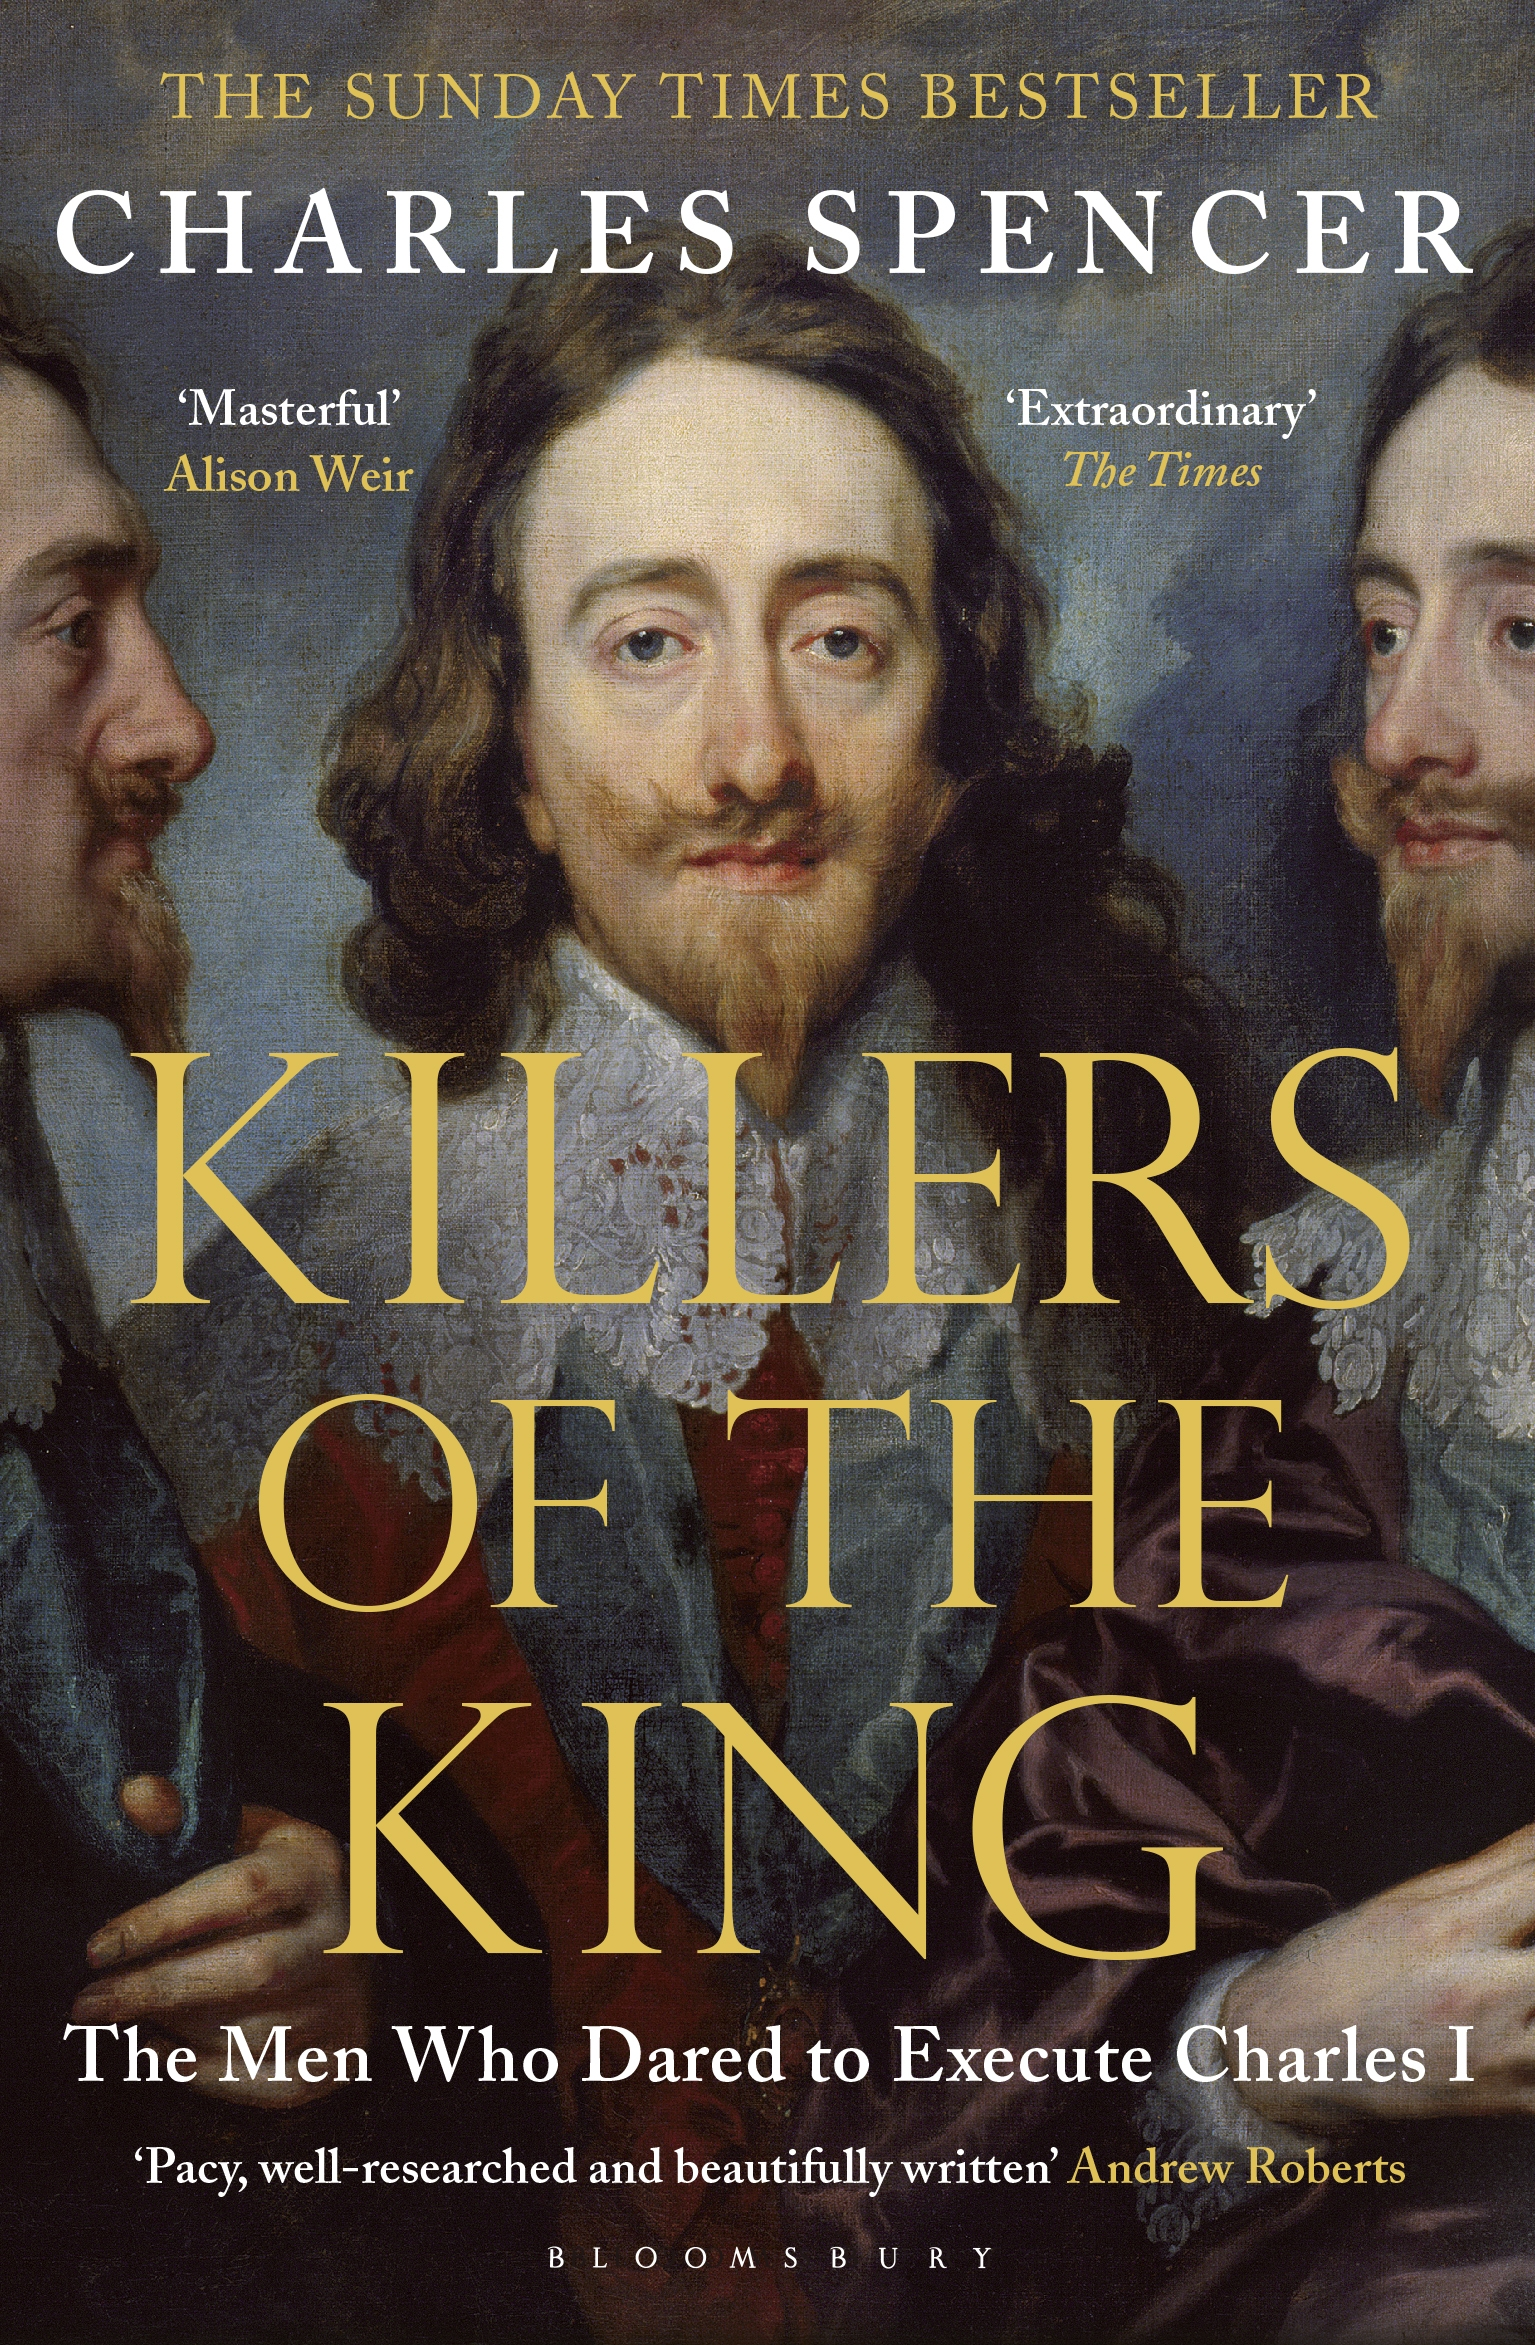 Killers of the King The Men Who Dared to Execute Charles I